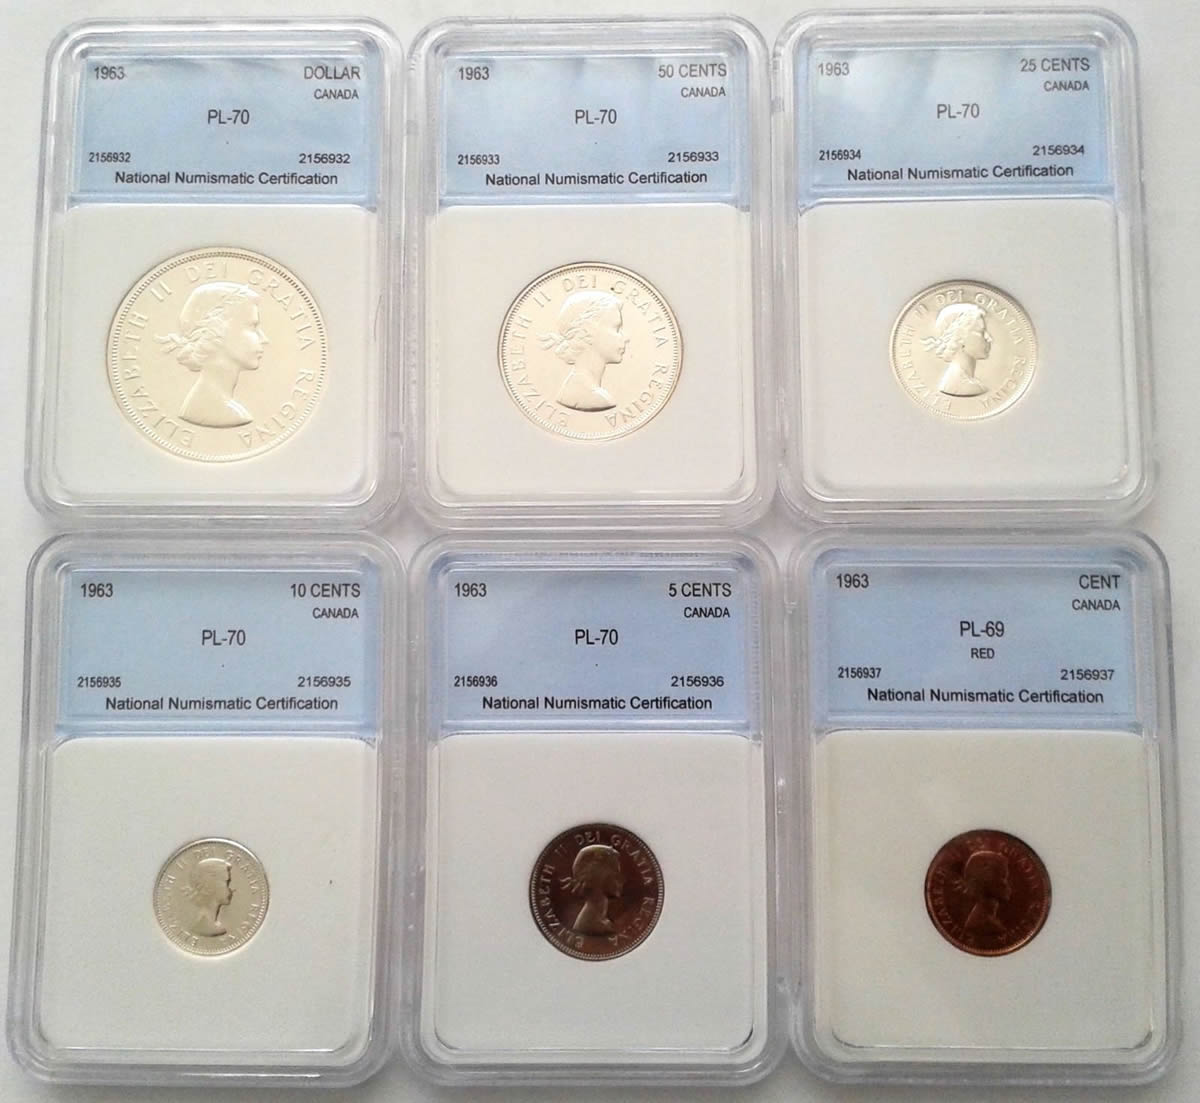 Have You Ever Seen A Proof Like 70 Coin This Auction Has 5 Of Them